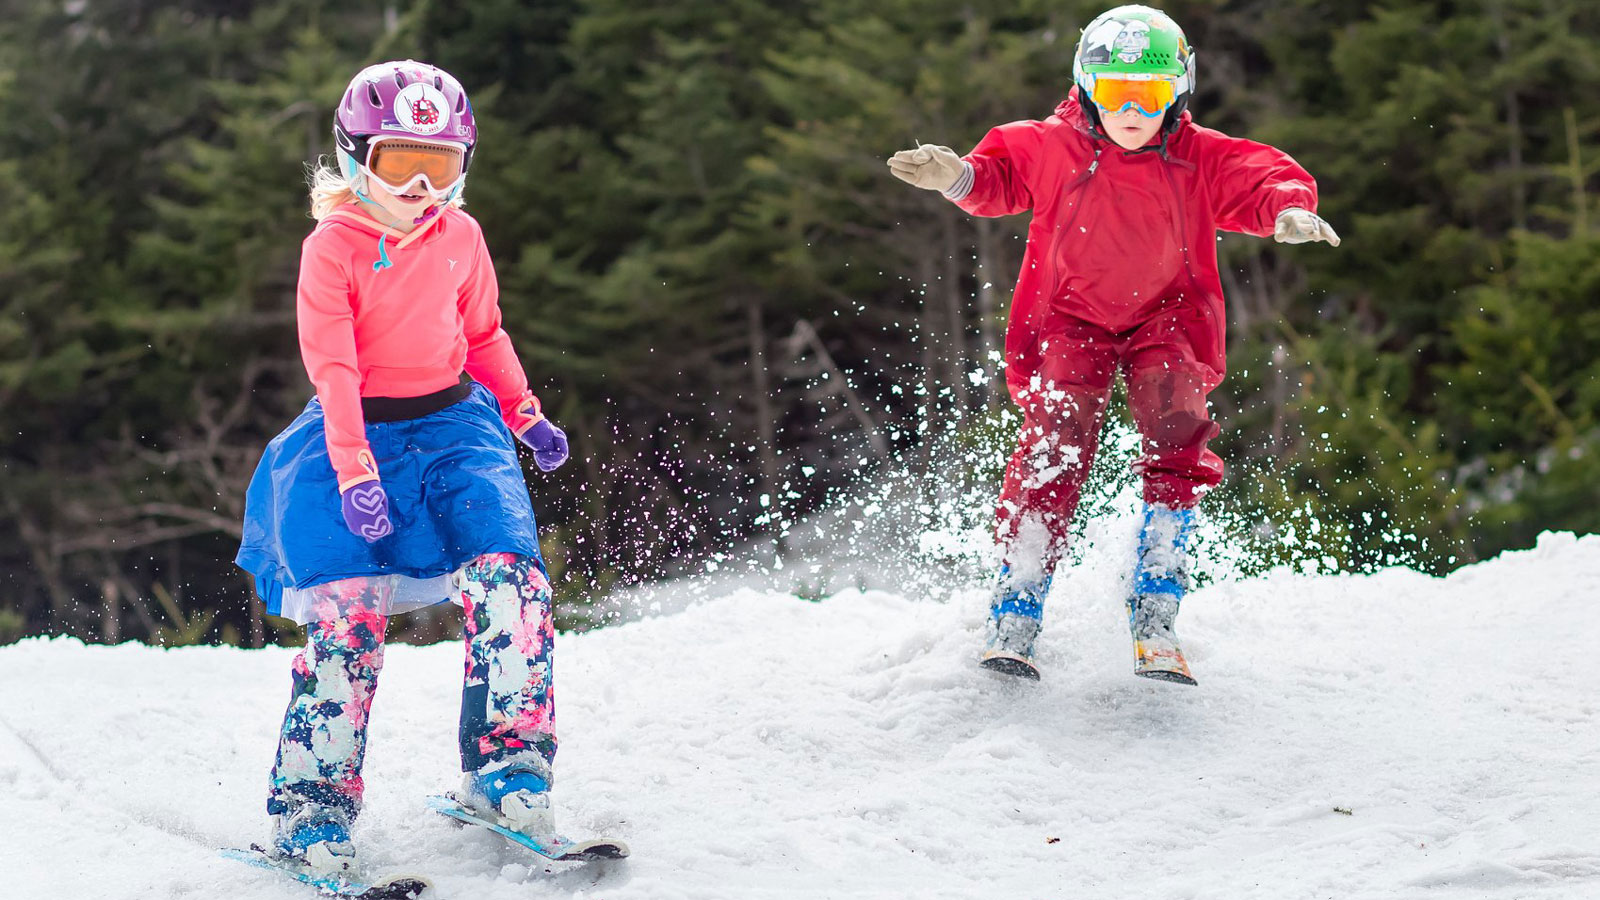 spring skiing in vermont - two children skiing